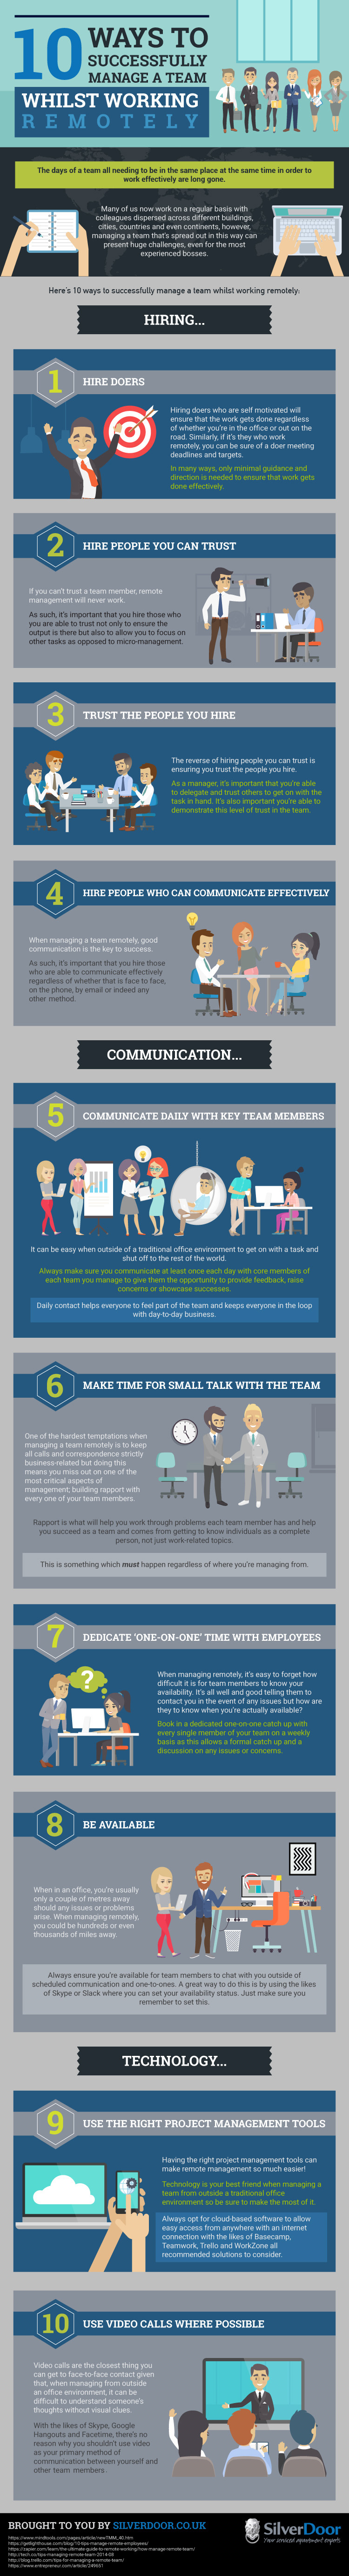 How To Successfully Manage A Remote Team [Infographic]